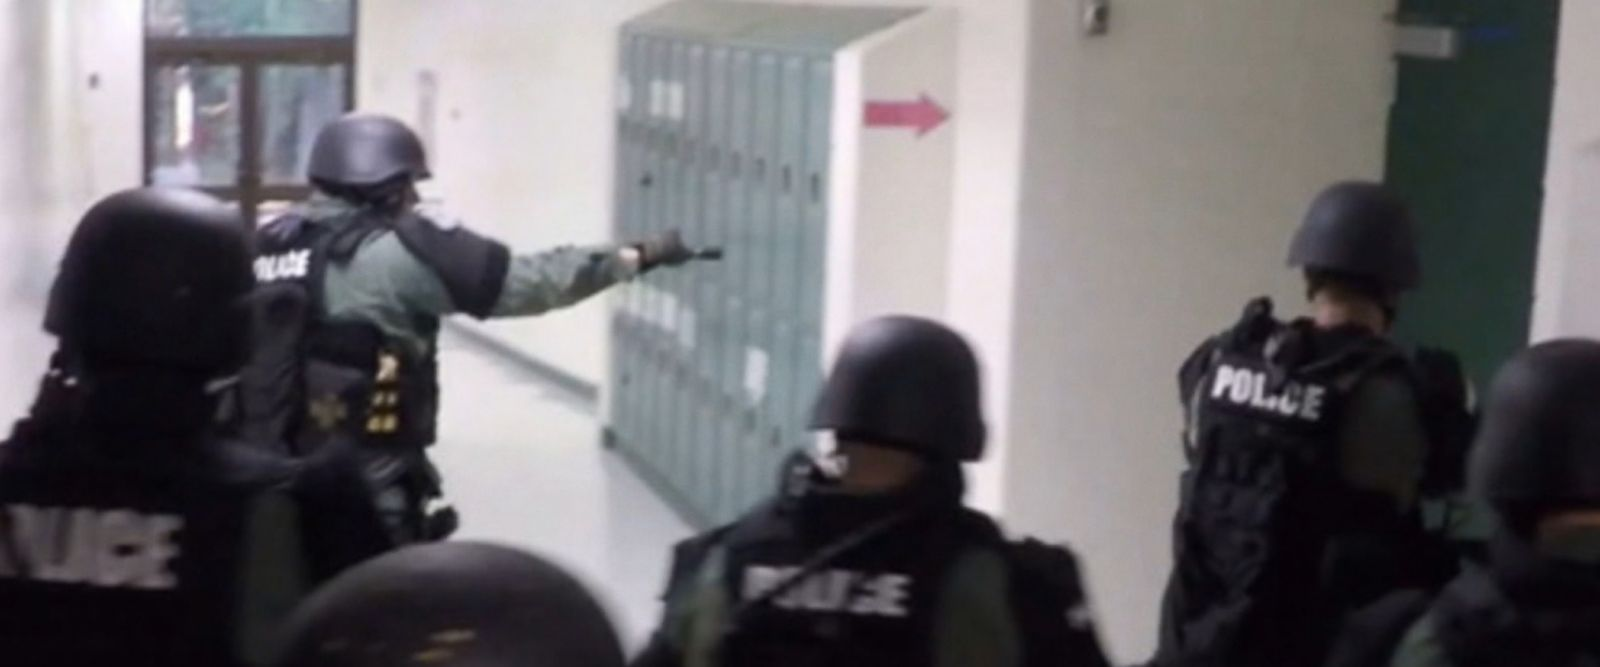 VIDEO: 'Start Here' podcast: Active-shooter scenarios on the rise